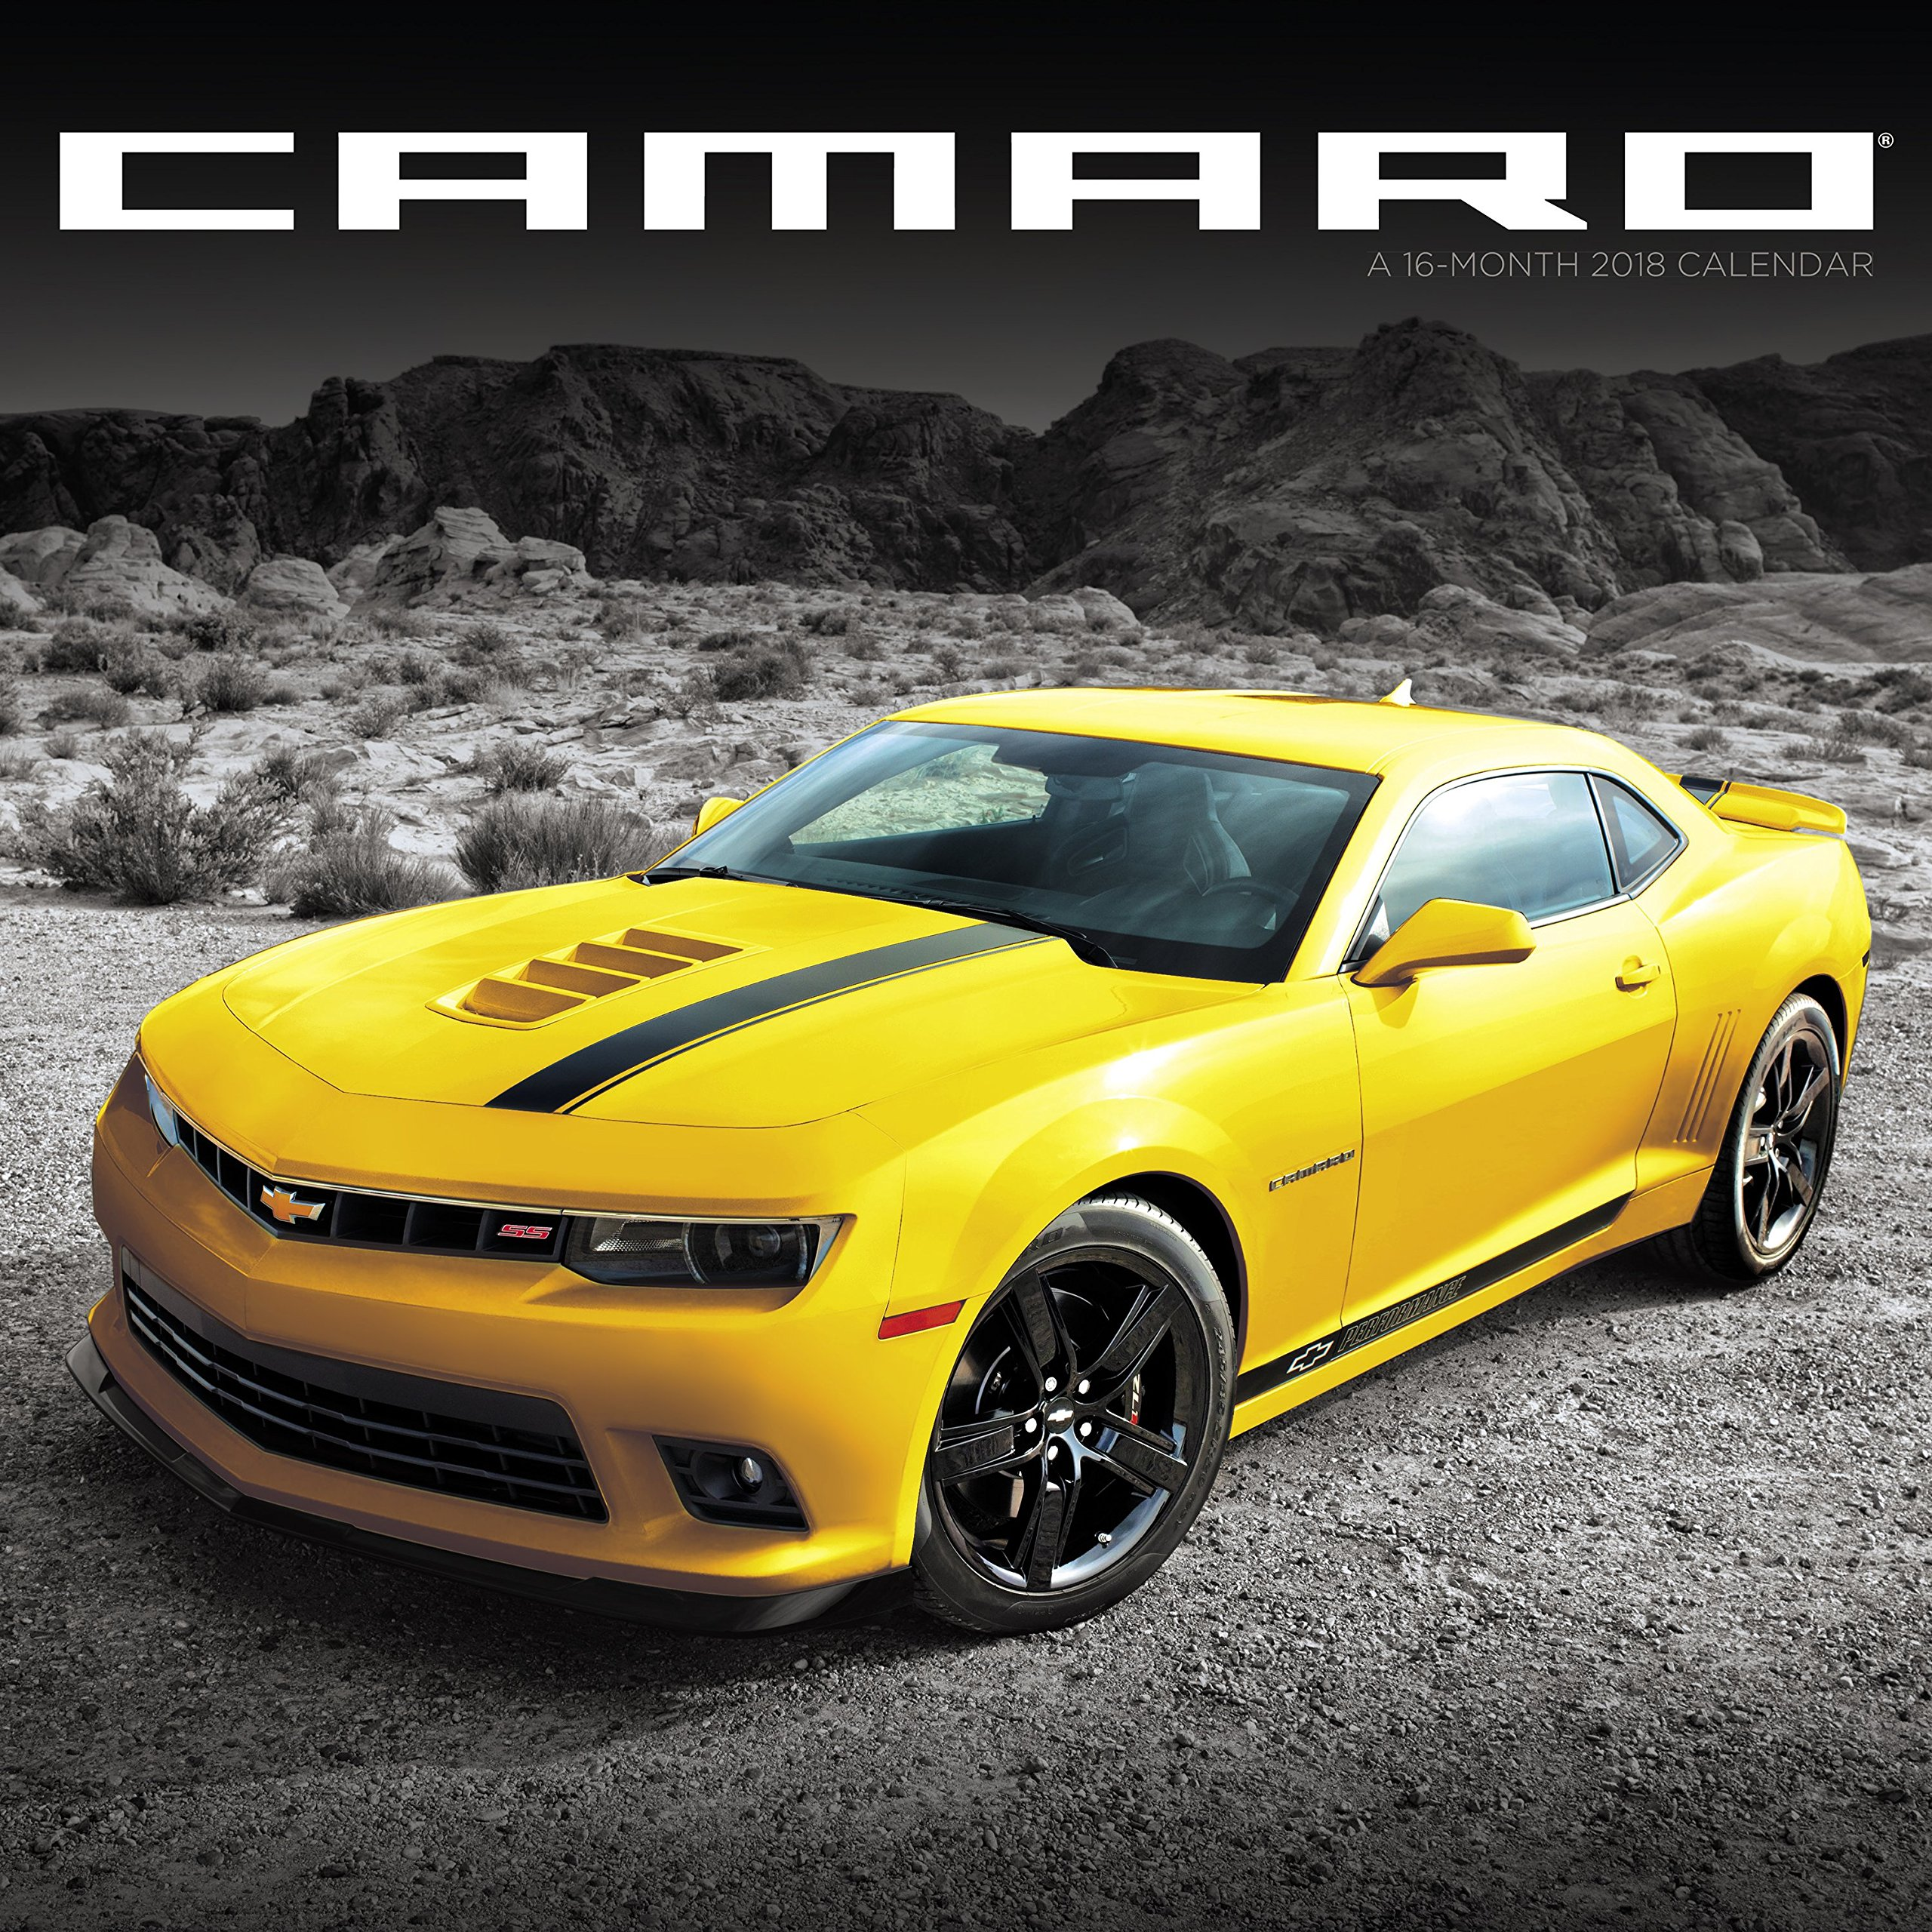 2018 camaro wall calendar mead mead 0038576615588 amazon com books